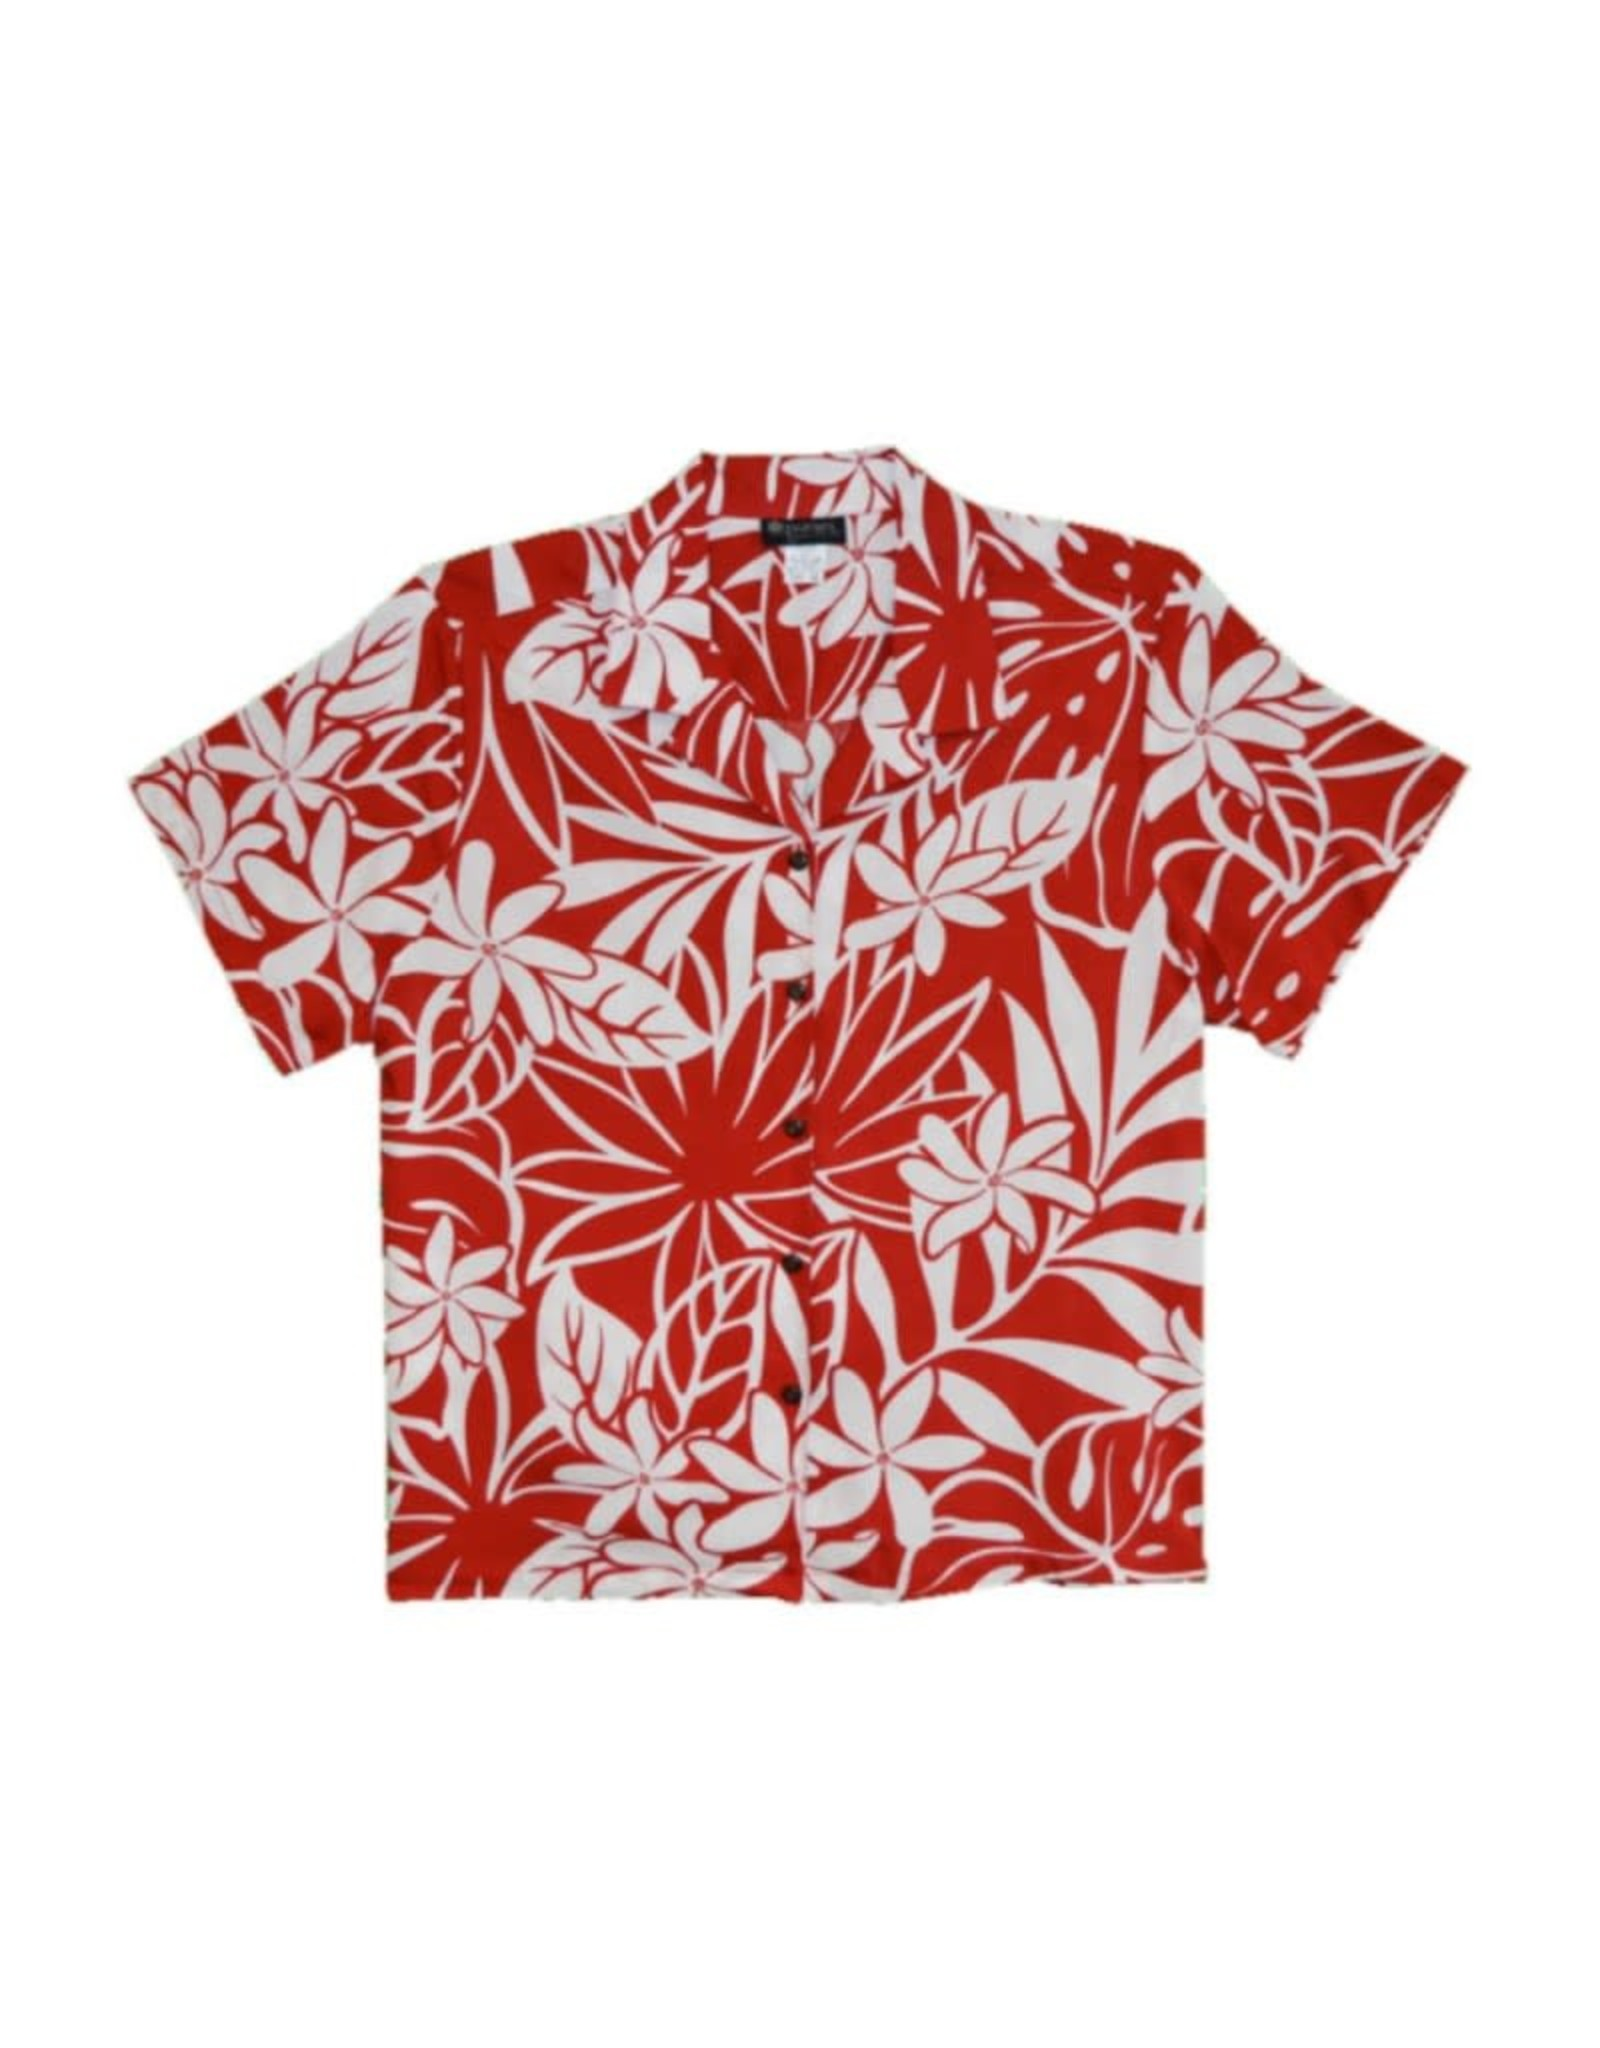 Robert J. Clancey April Blooms Red Women's Camp Shirt